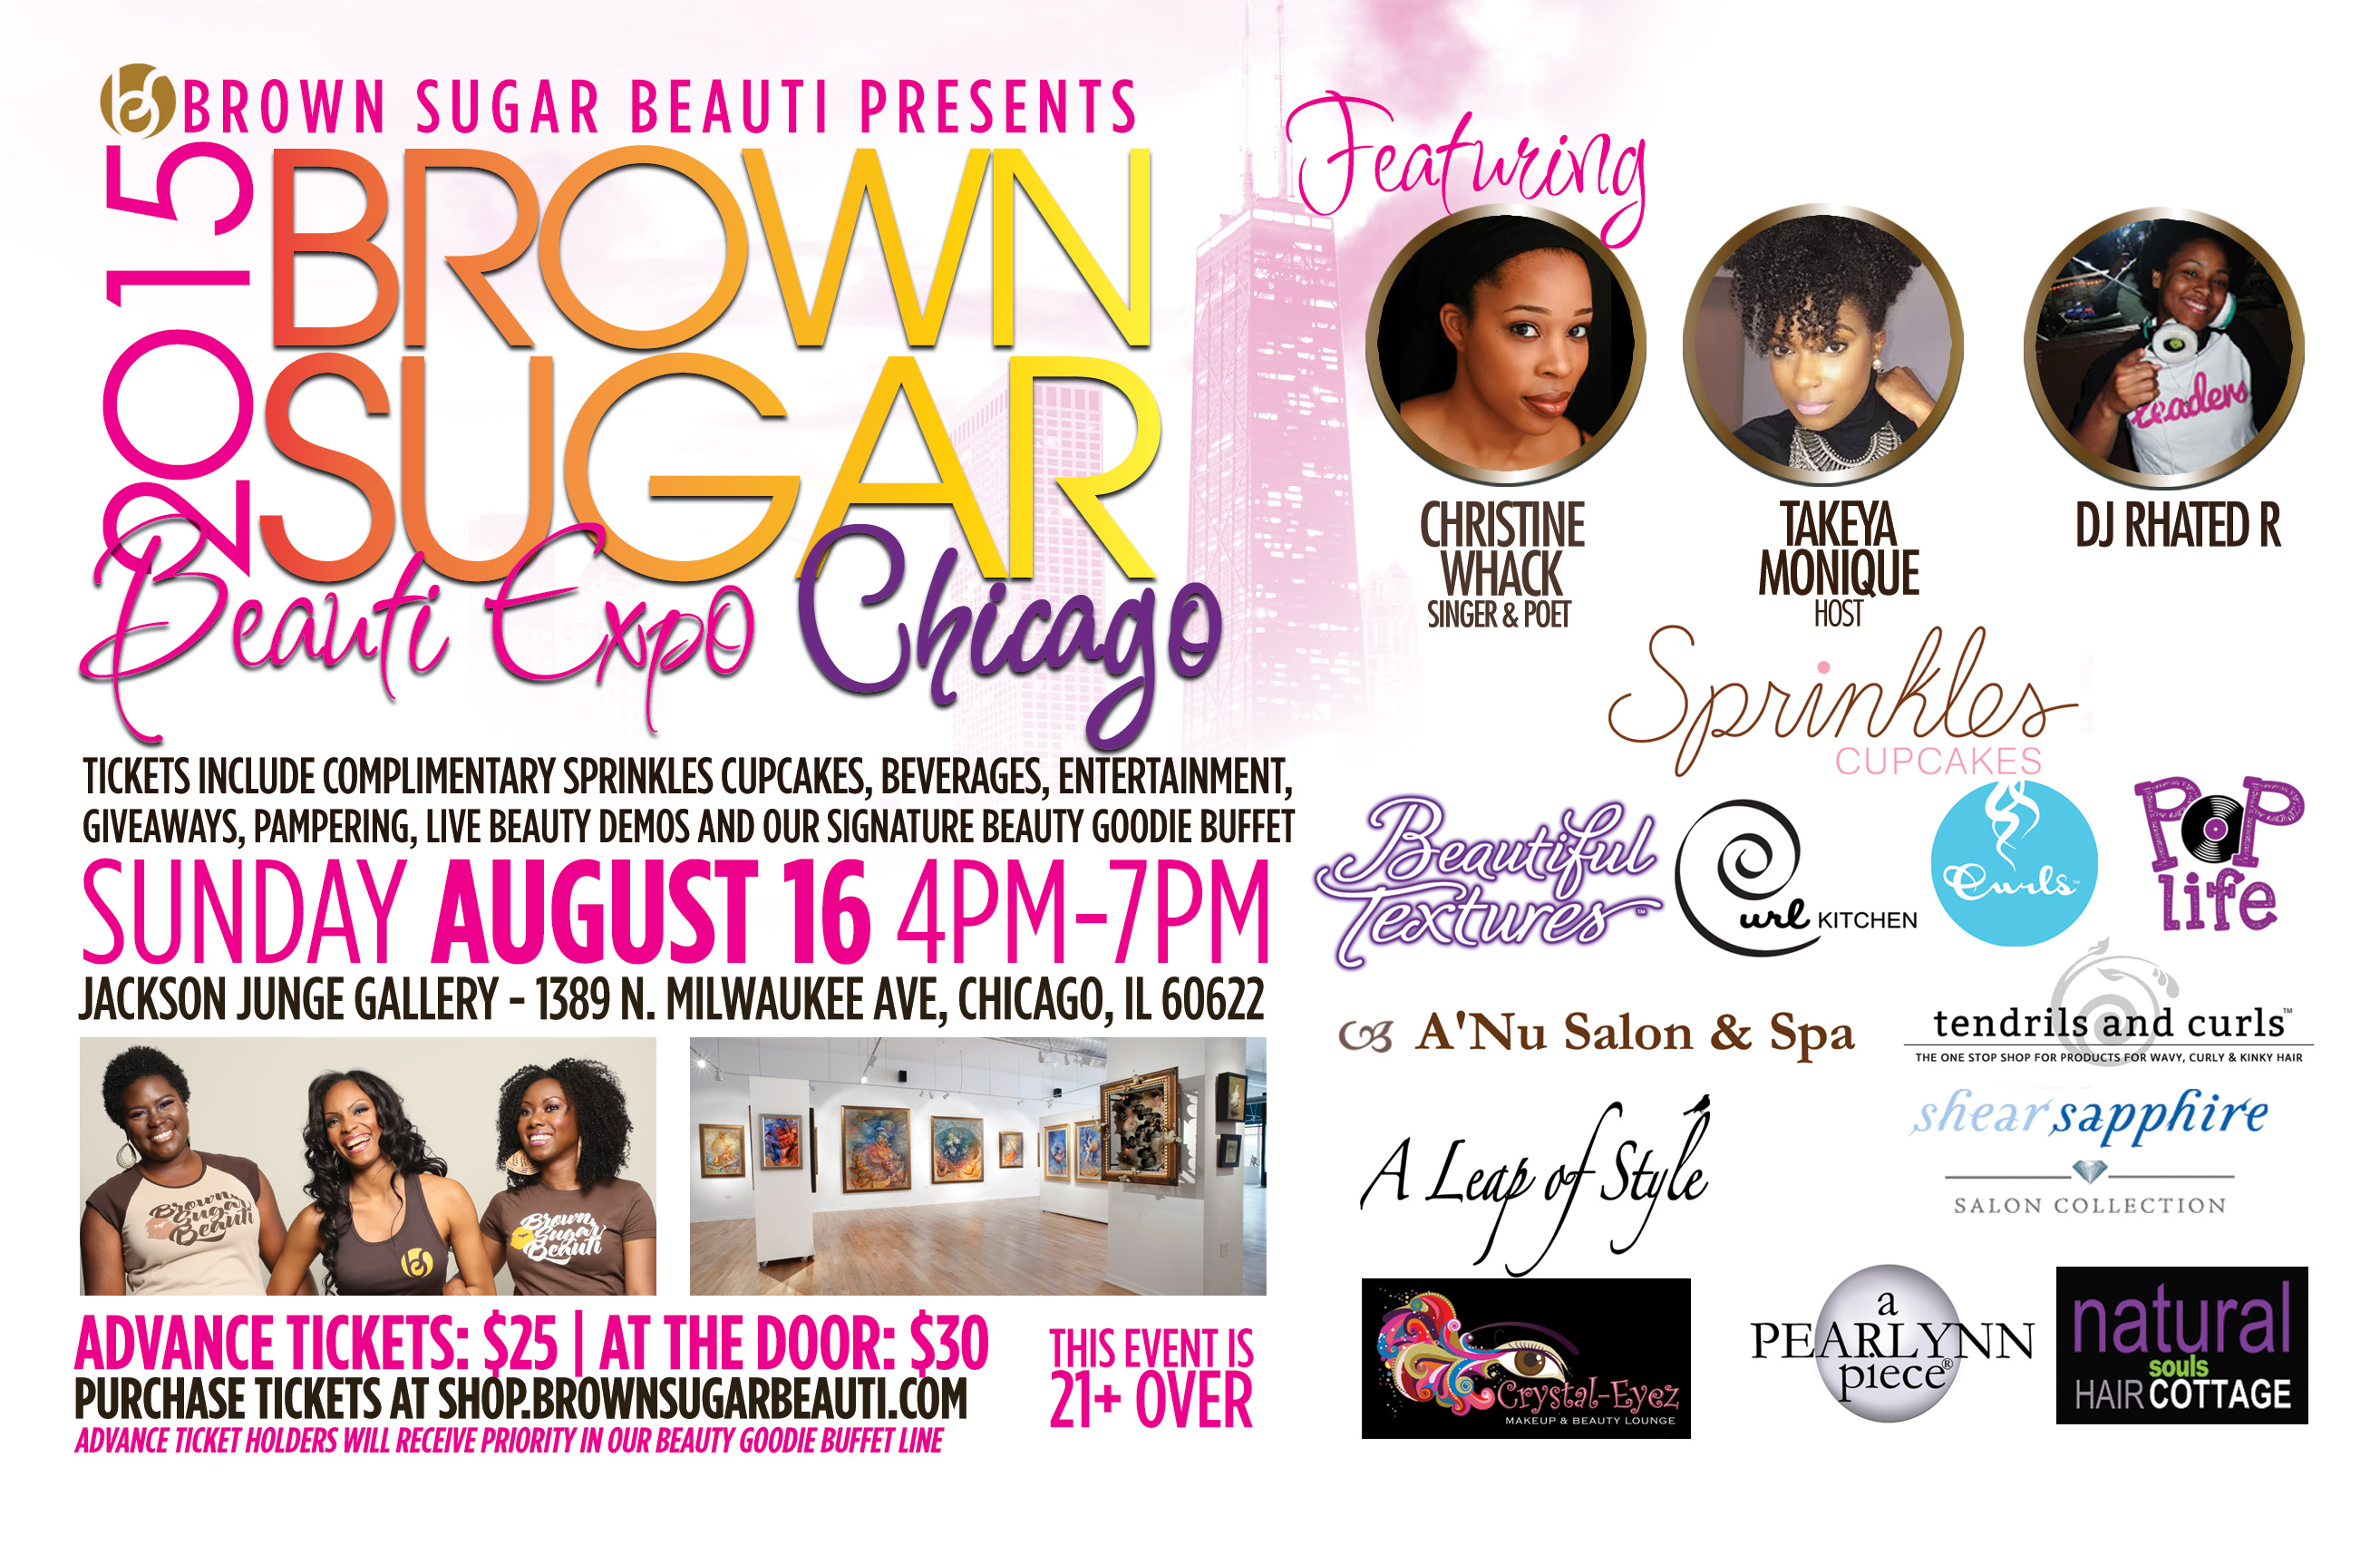 2015 BROWN SUGAR BEAUTI EXPO FLYER